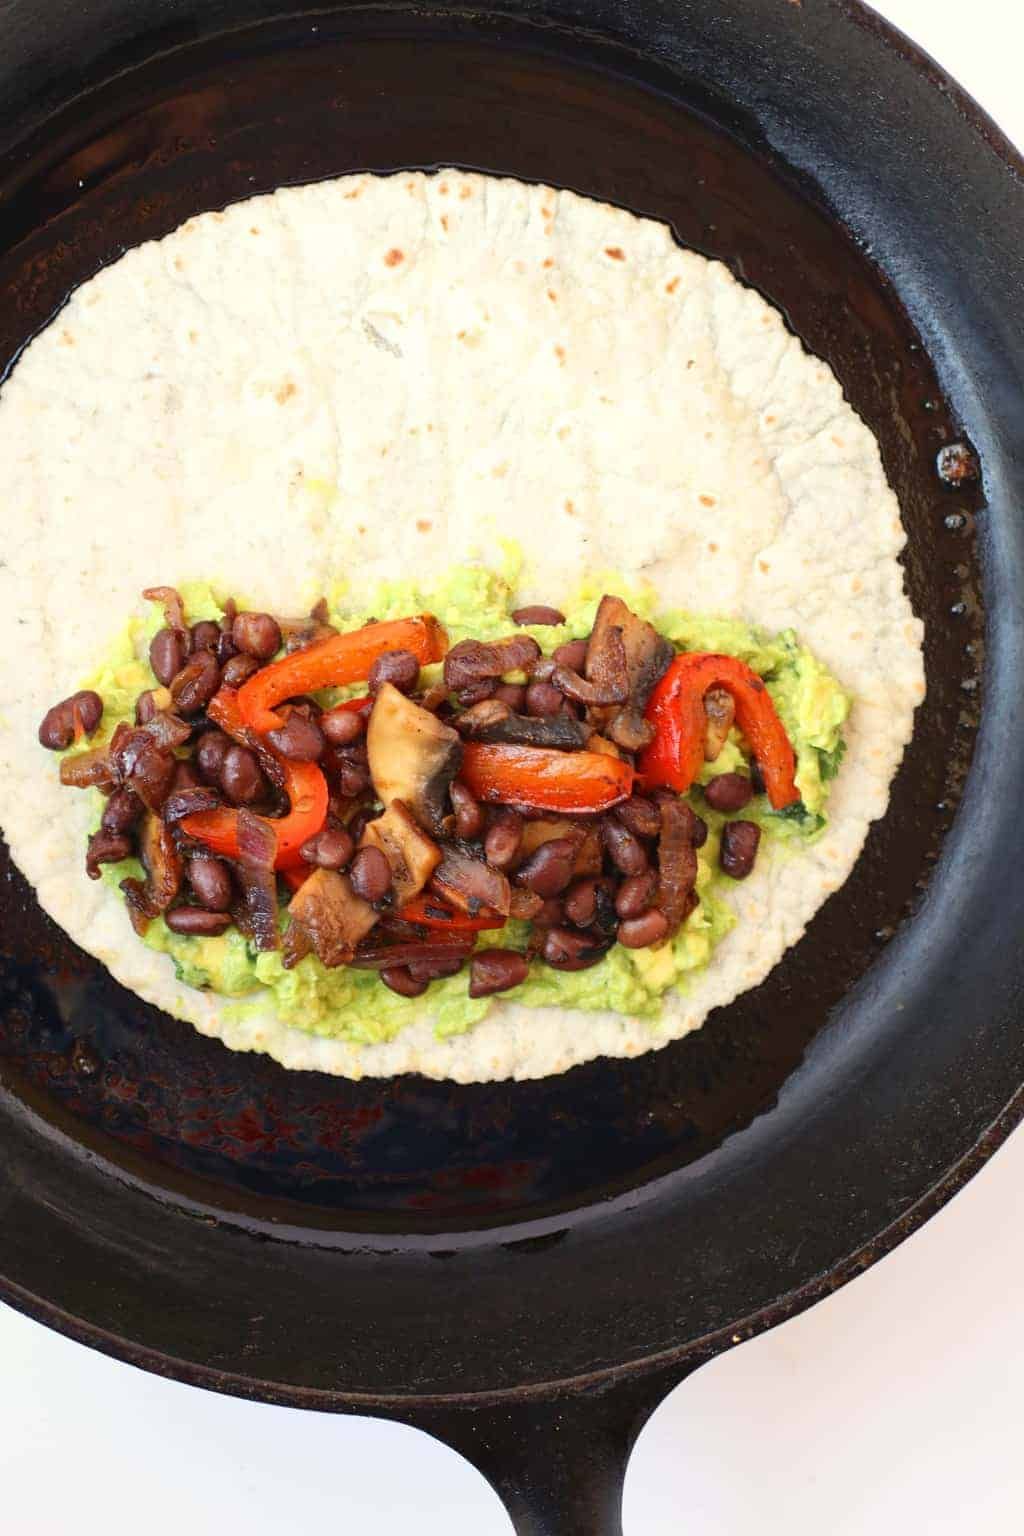 Tortilla with beans and veggies in a cast iron skillet